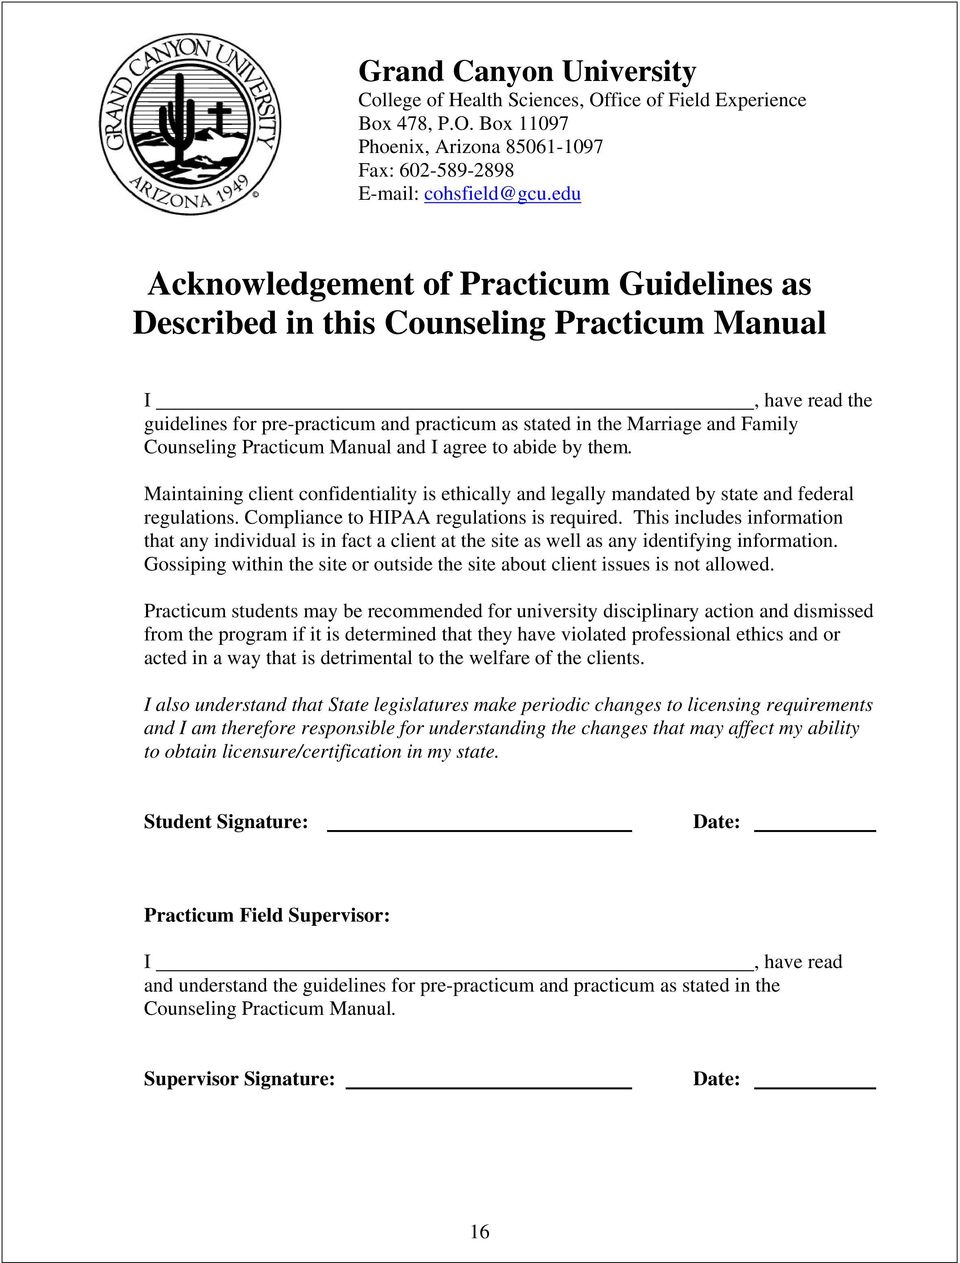 Counseling Practicum Manual and I agree to abide by them. Maintaining client confidentiality is ethically and legally mandated by state and federal regulations.